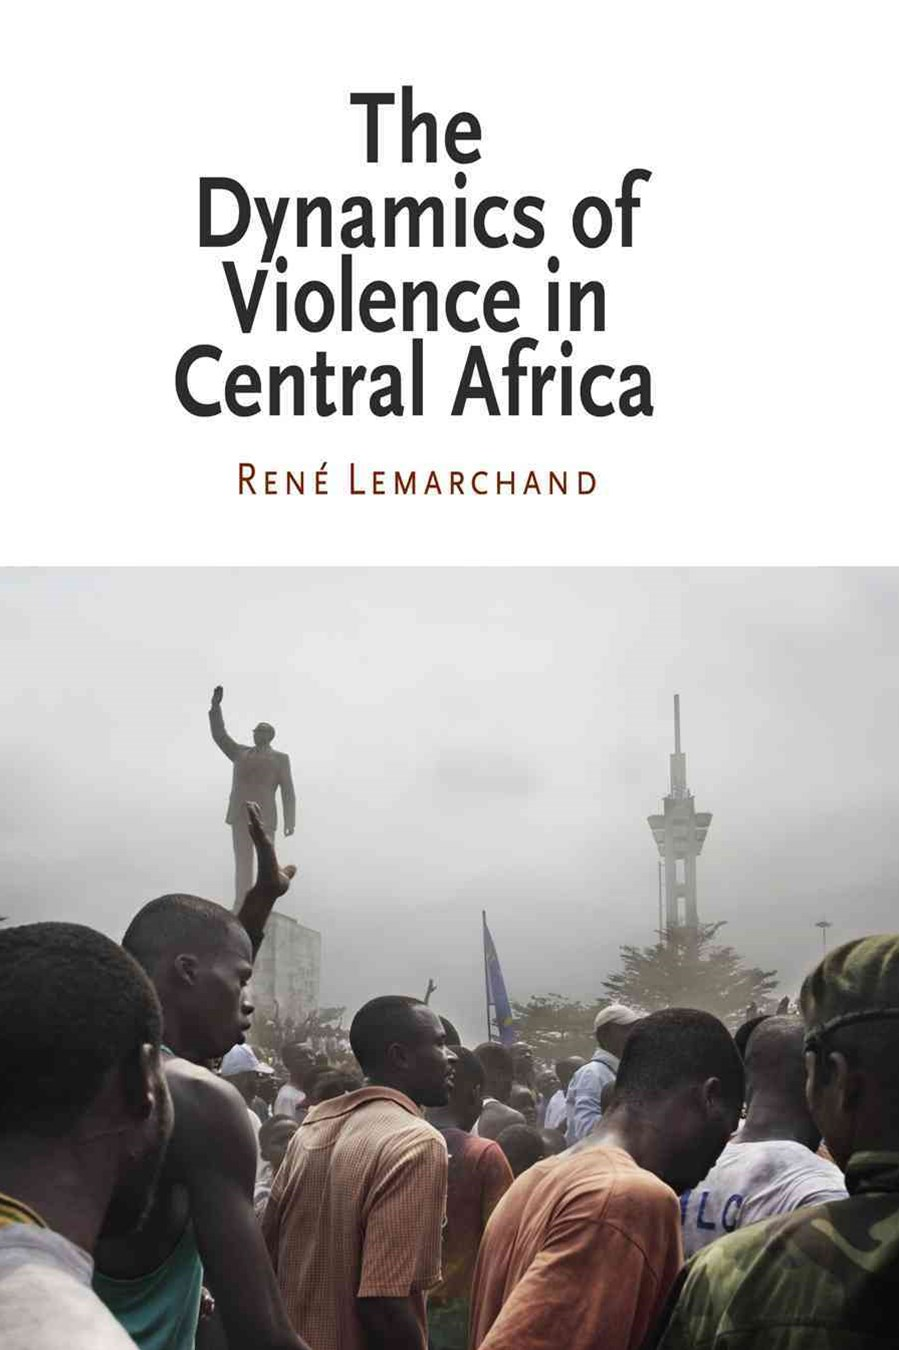 Dynamics of Violence in Central Africa